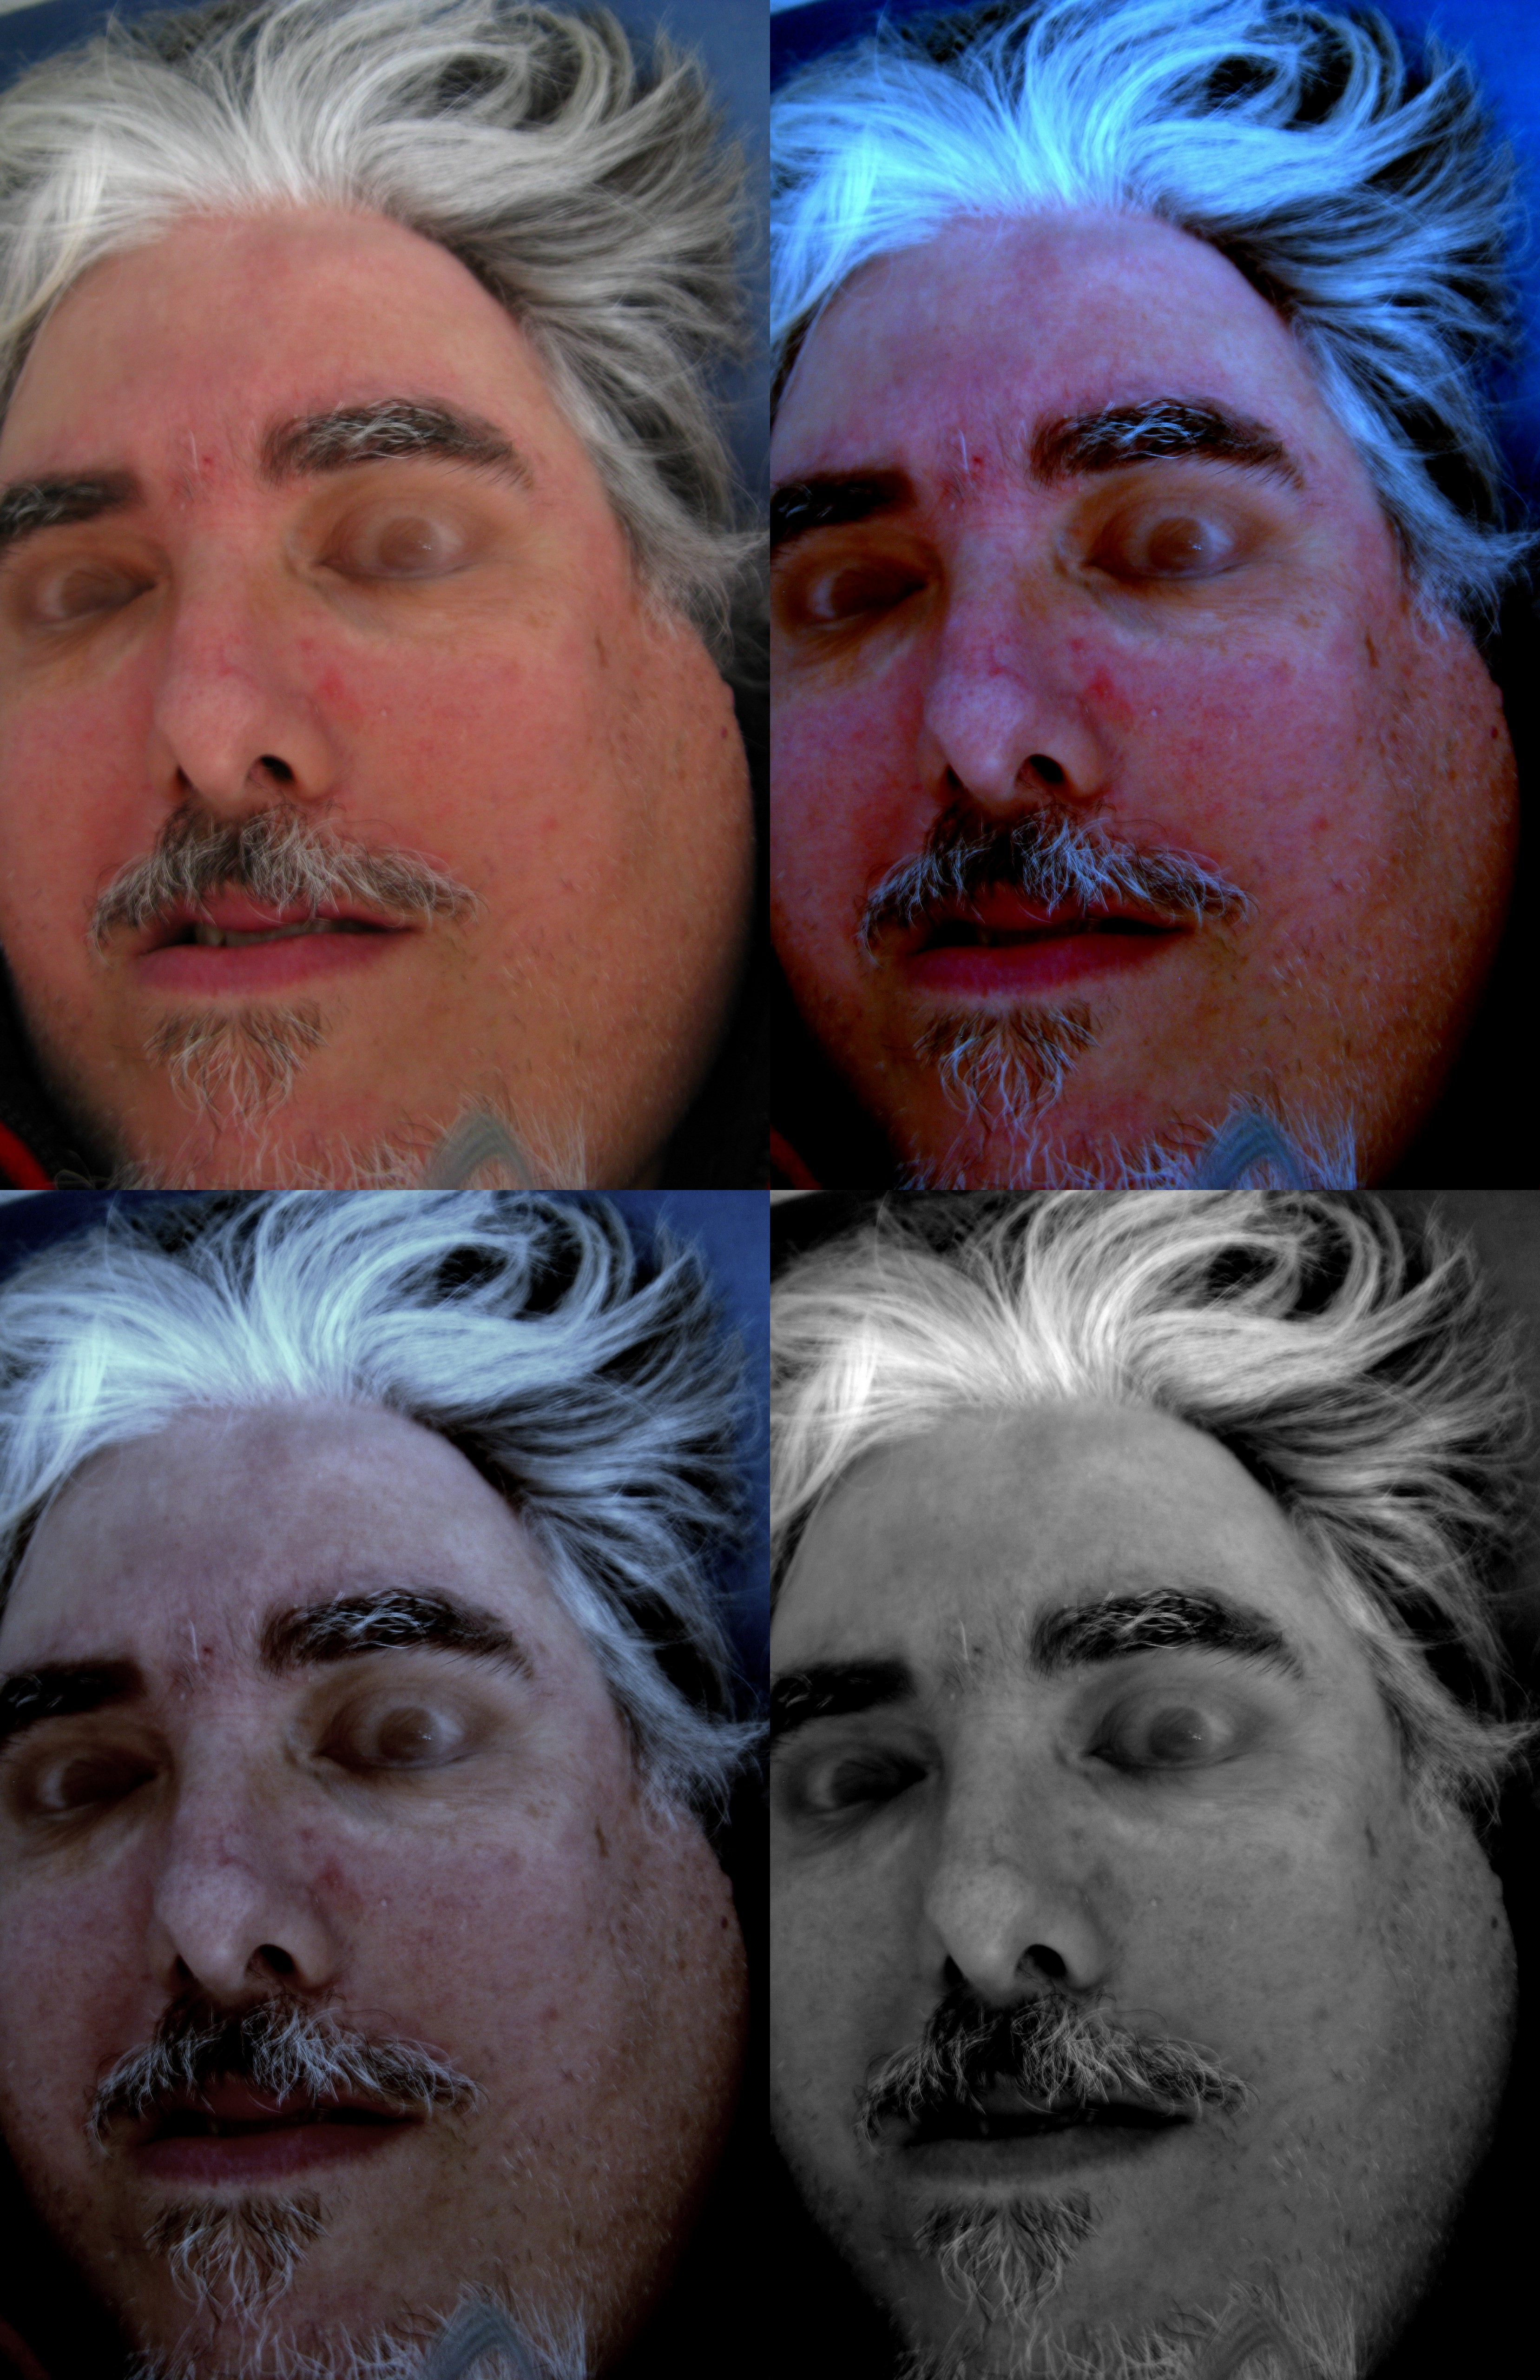 blink progression by intouch